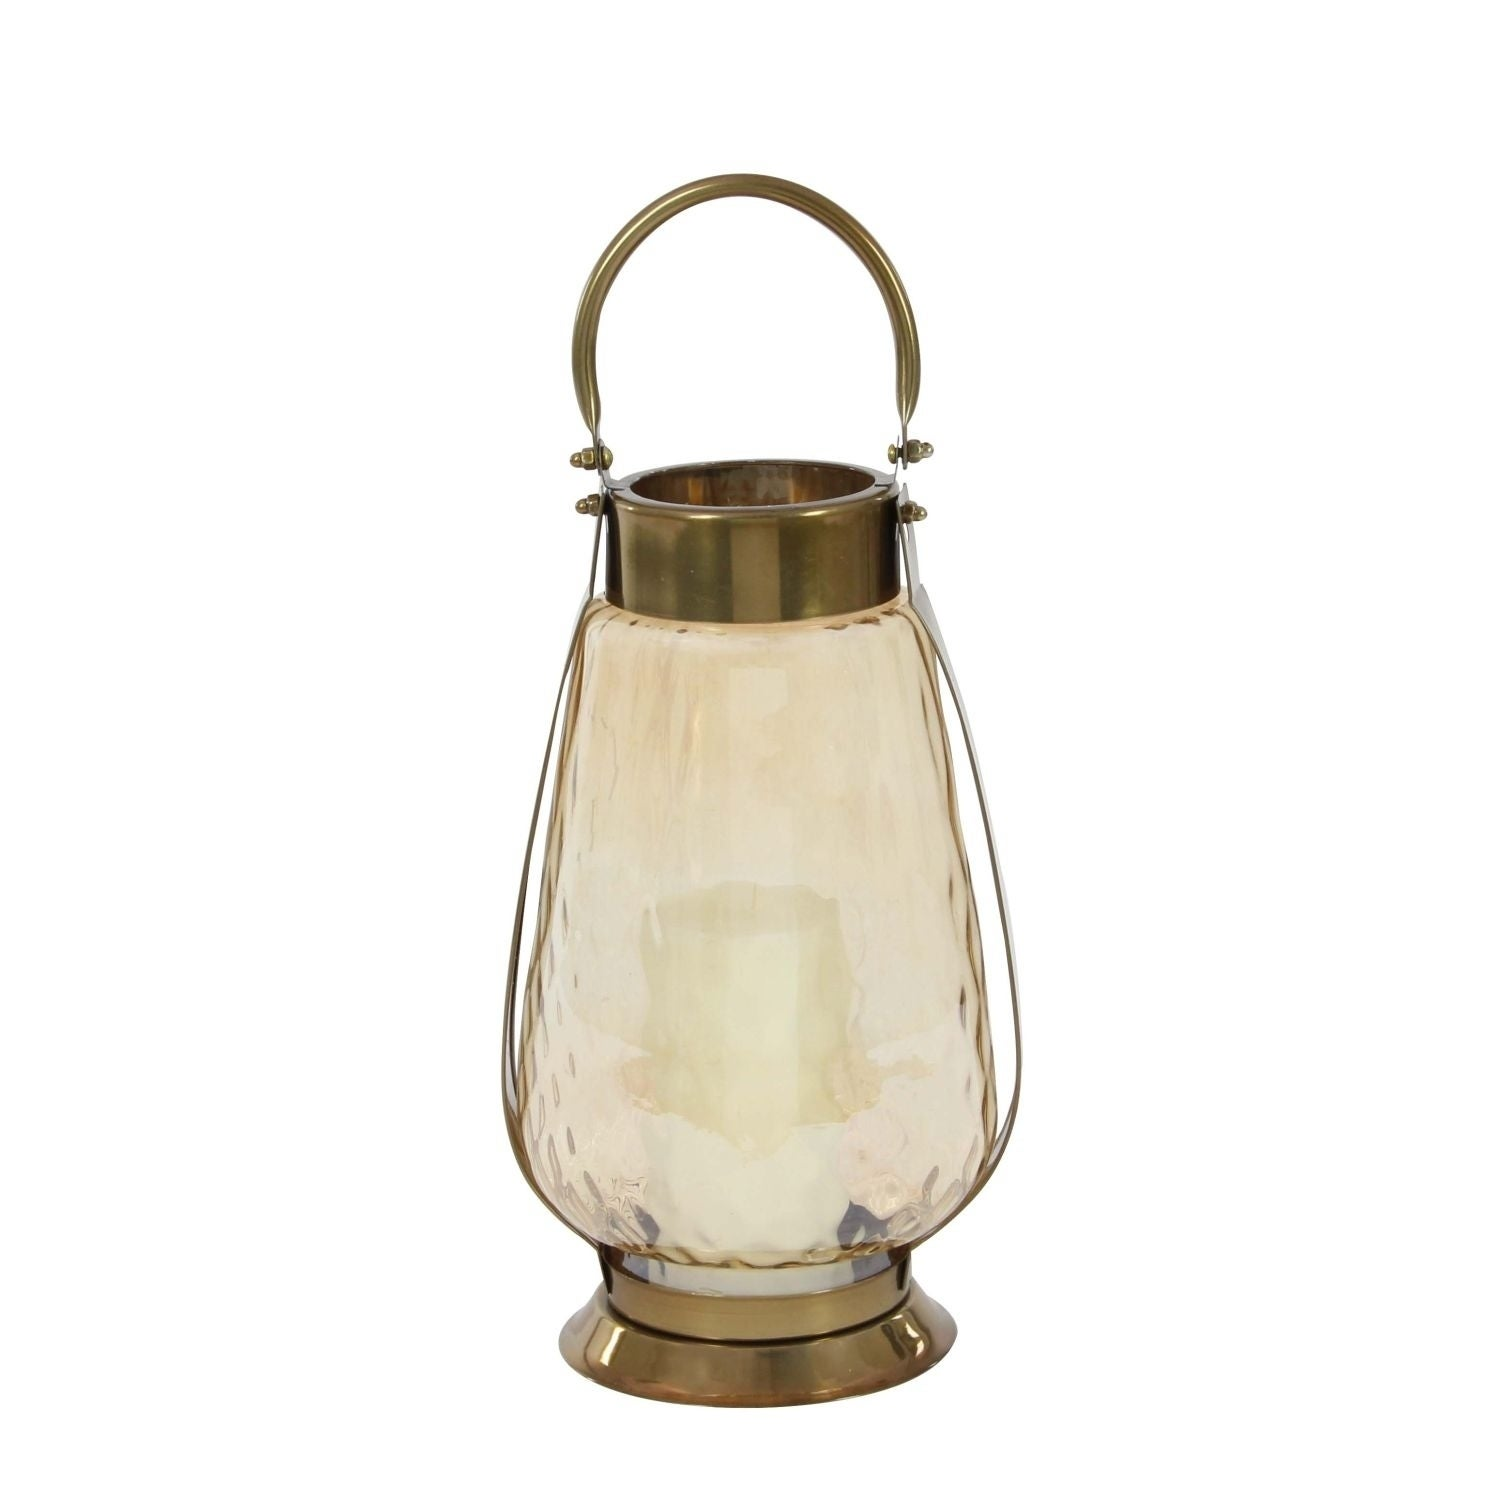 Studio 350 Stainless Steel Glass Lantern 7 inches wide, 1...